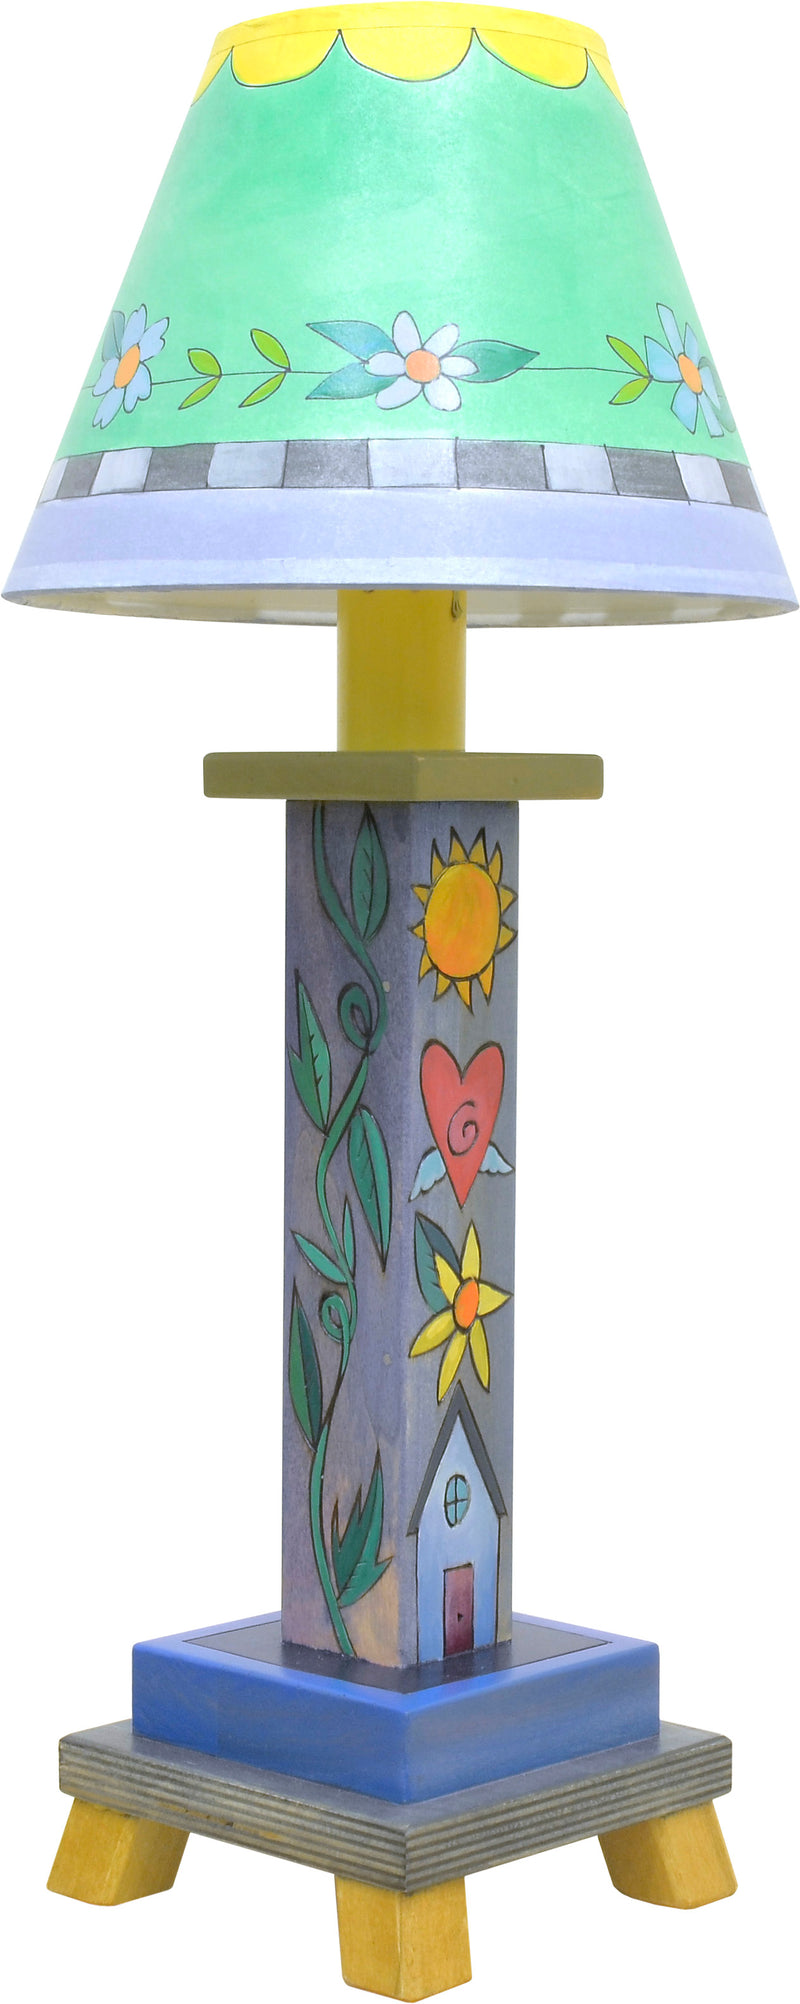 Milled Candlestick Lamp –  Cool-toned stacked icon lamp base motif with a sweet shade filled with flowers and scallops